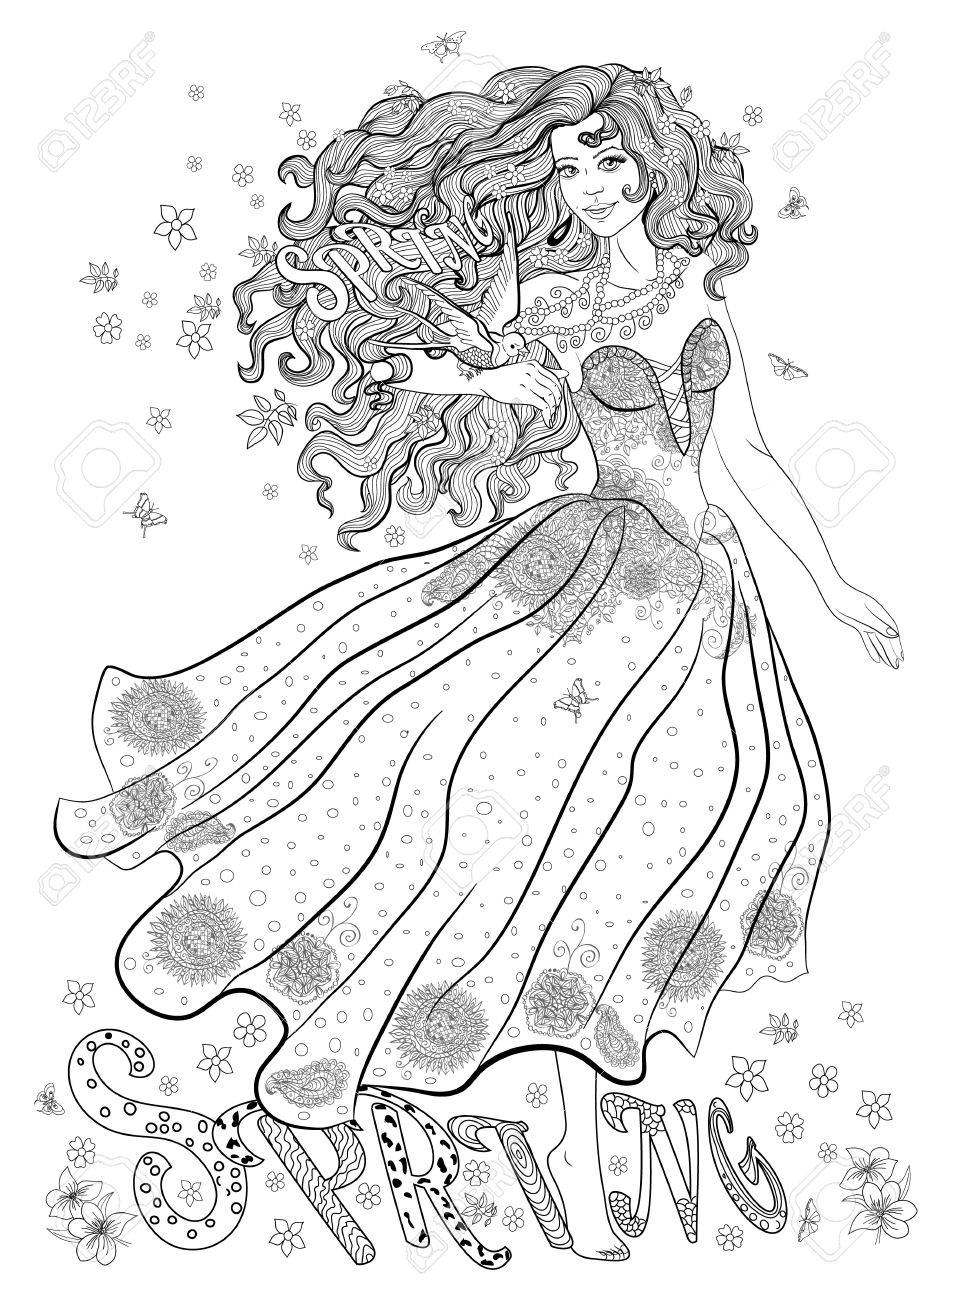 Free Free Printable Spring | Coloring Pages For Adults, Download ... | 1300x957